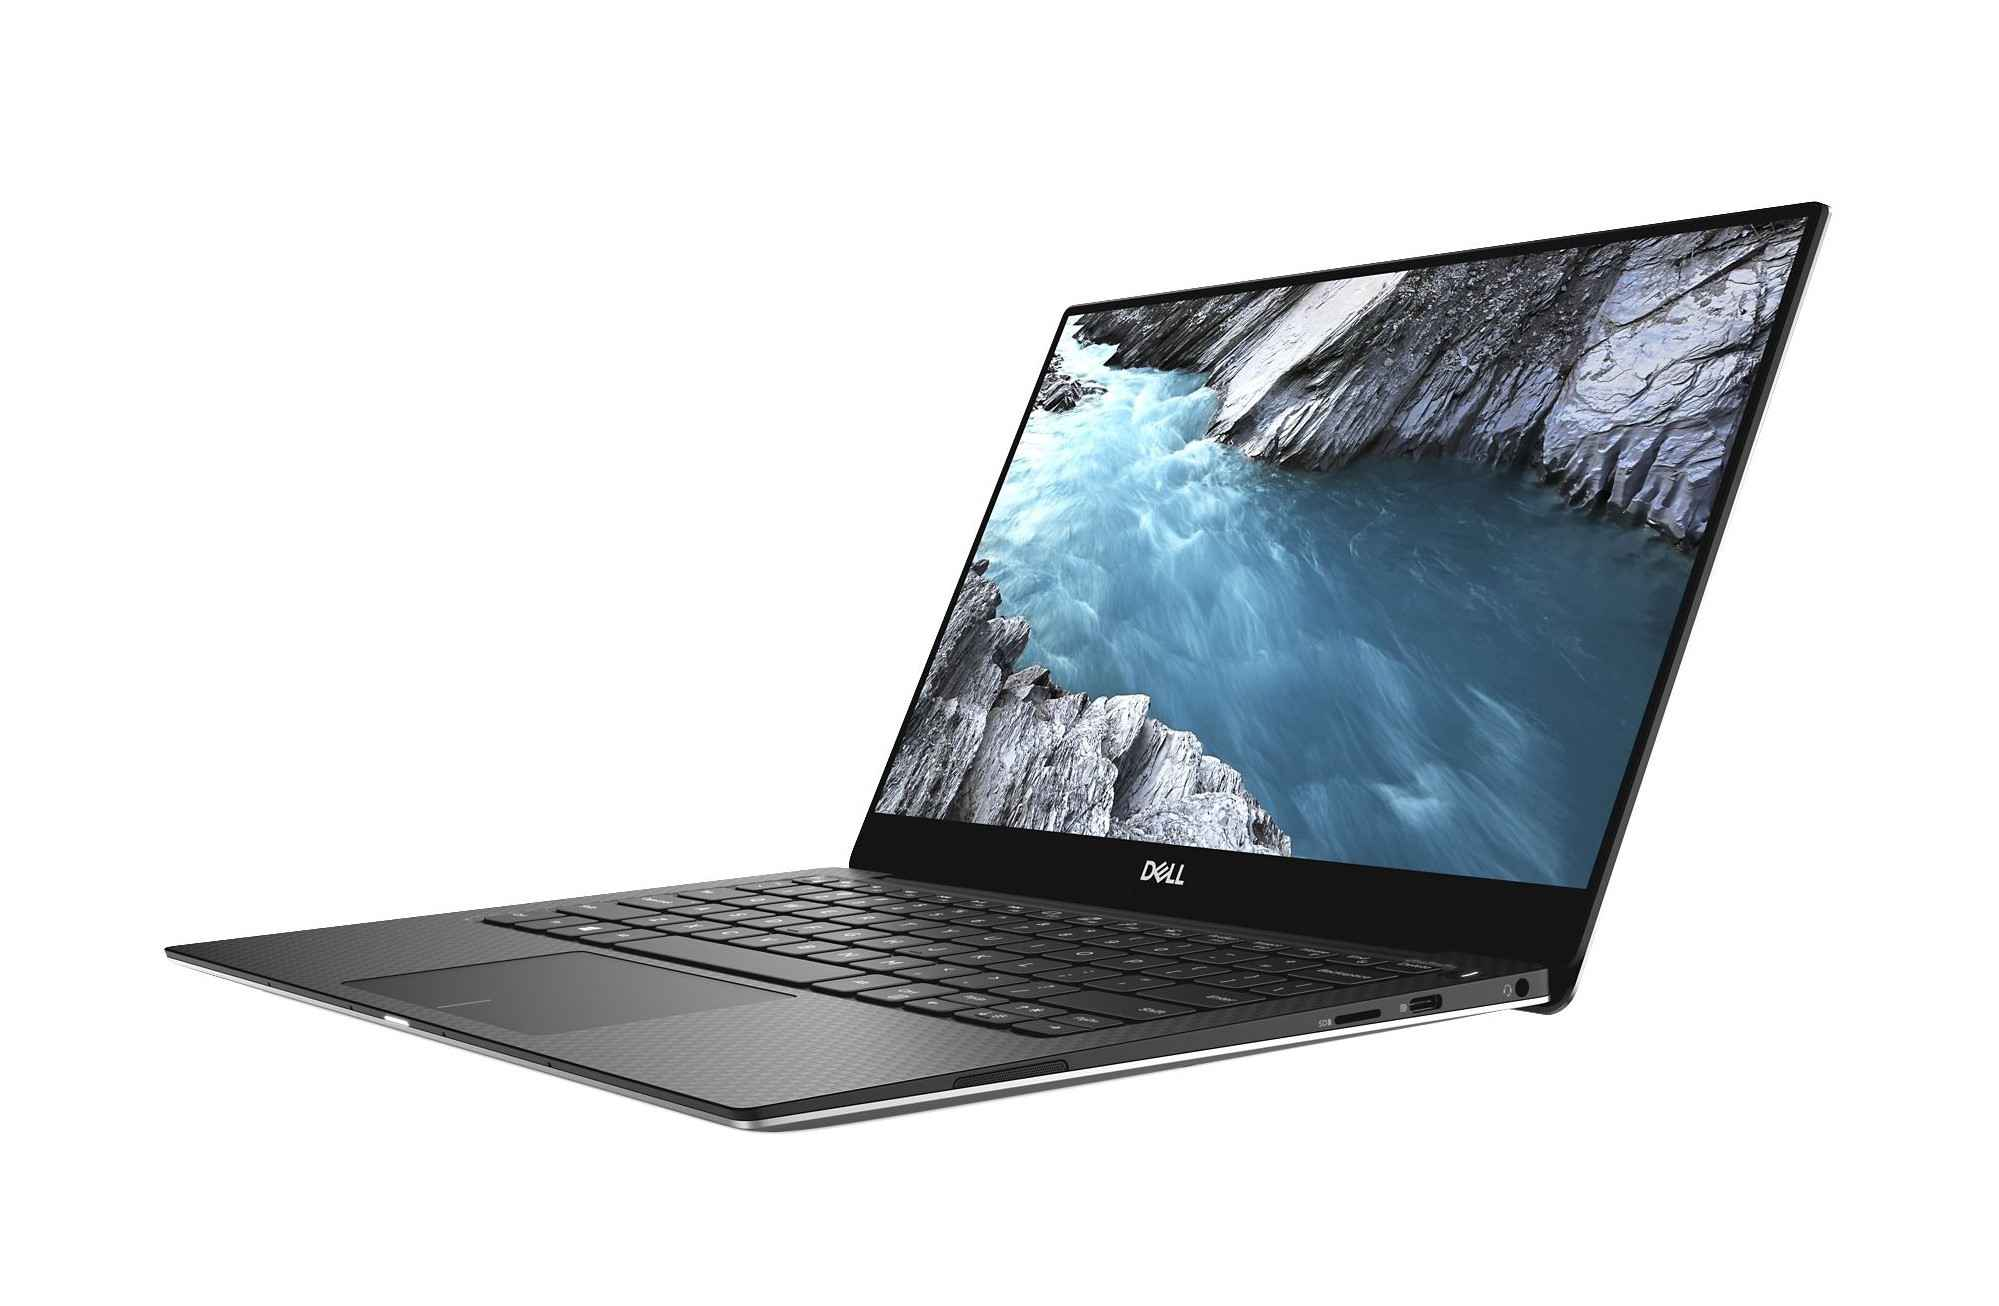 מחשב נייד Dell XPS 13 9370 XP-RD33-10550 דל